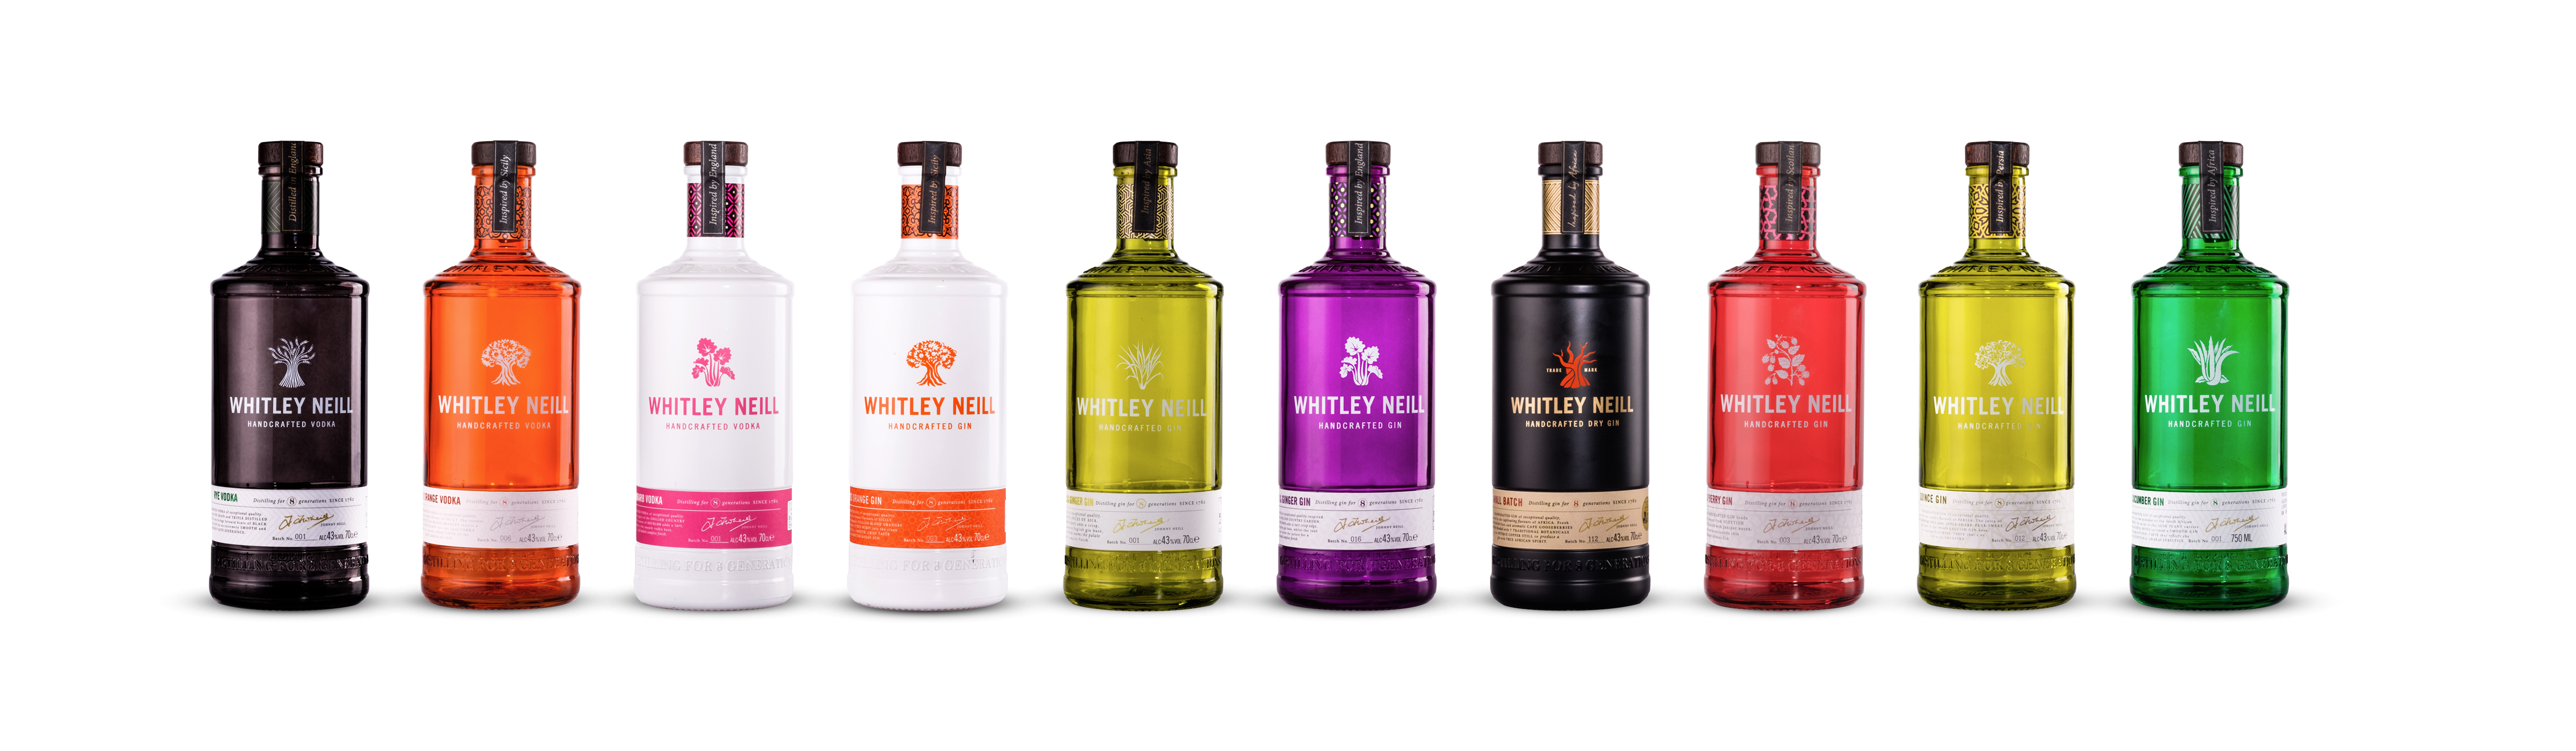 Halewood Adds To Portfolio With New Whitley Neill Flavoured Gins And Dead Man?s Fingers Rum photo